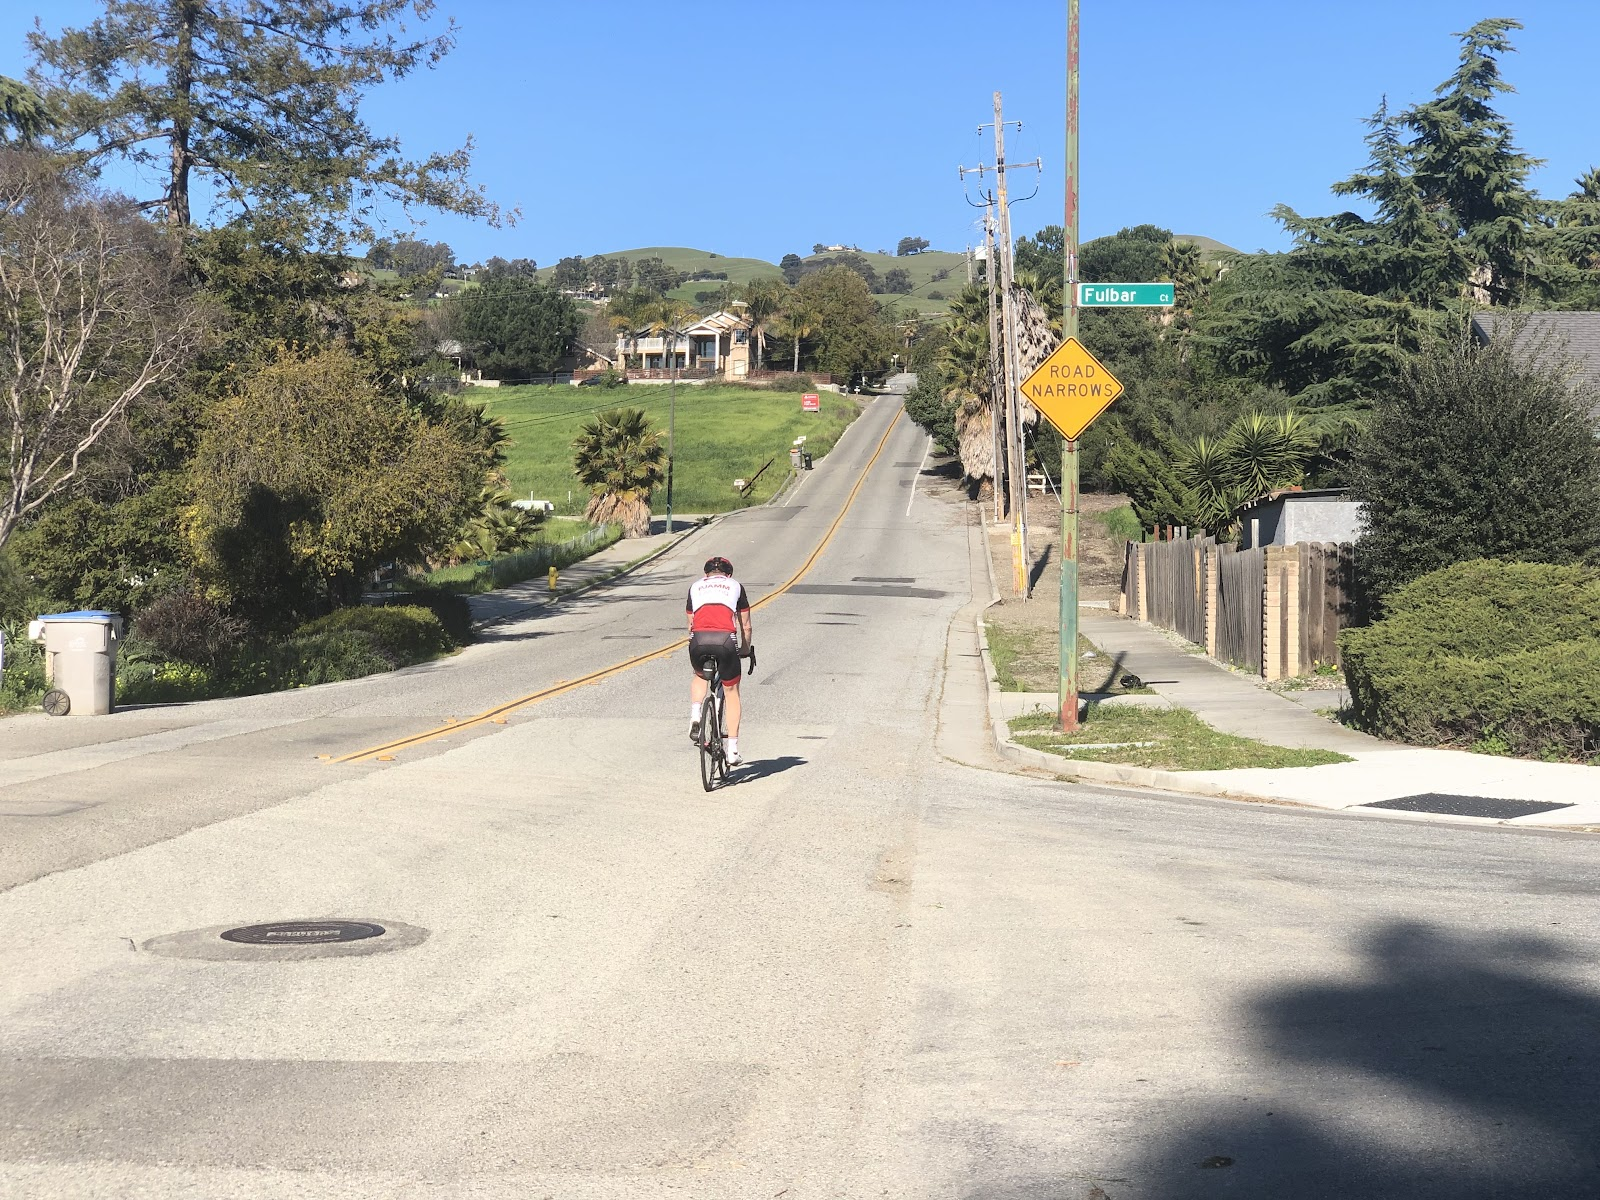 Riding bike up Sierra Road  - view of start and road - PJAMM Cycling cyclist on bike